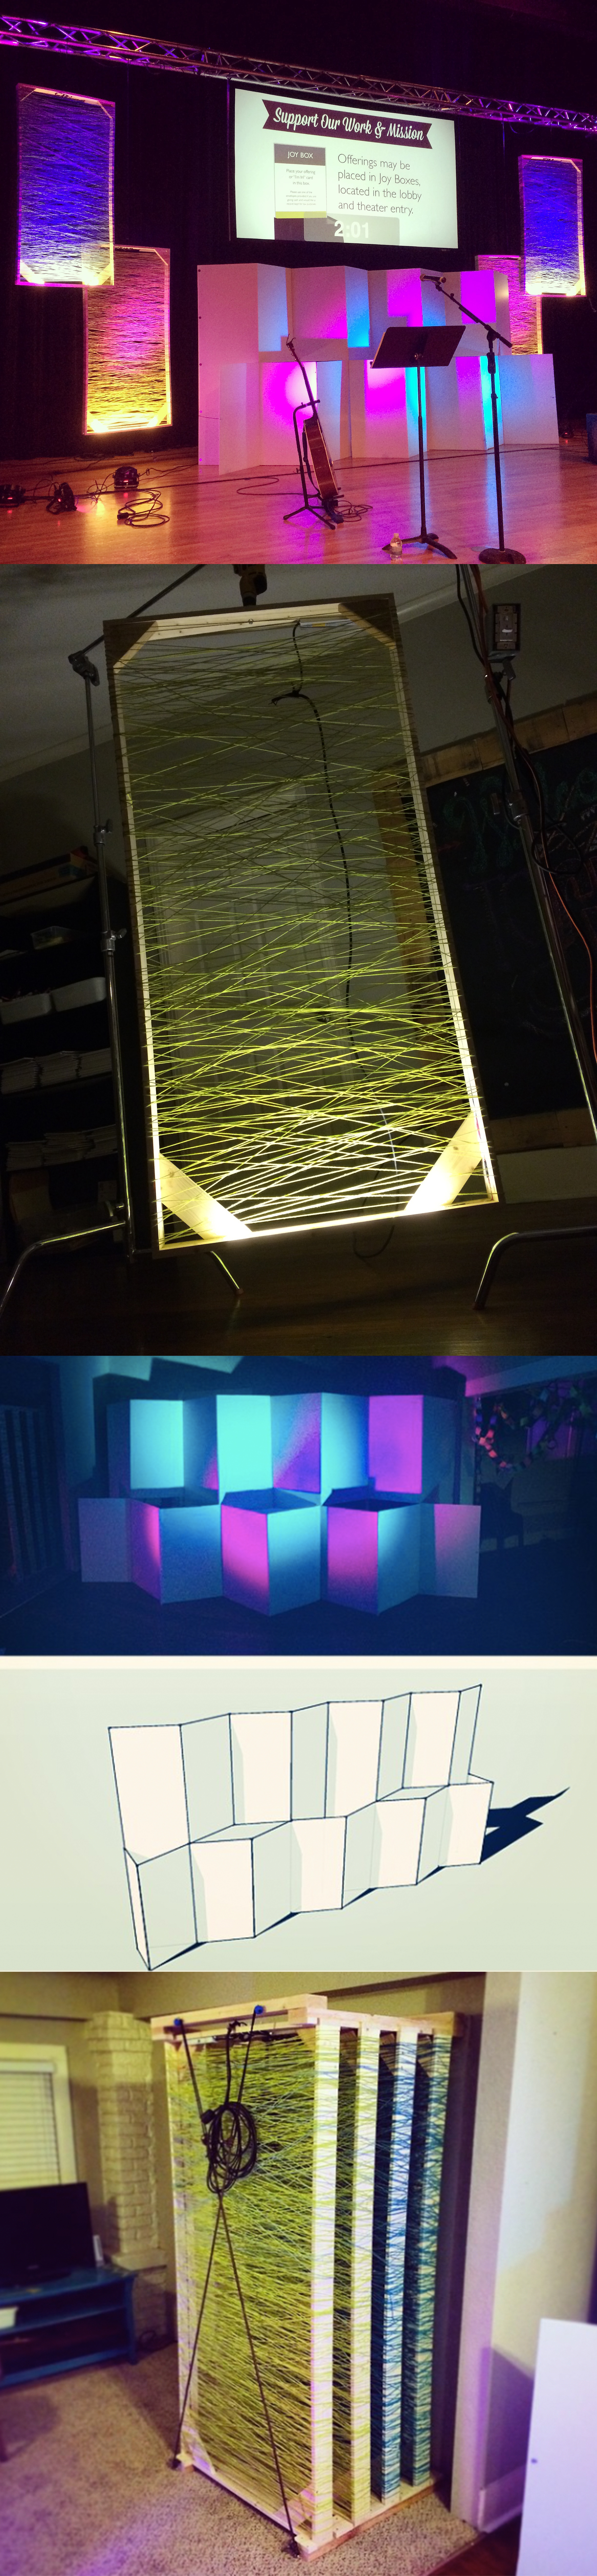 church lighting design ideas. A Simple Yet Effective Stage Redesign For Clearview Church By Fusiform Design\u2026 Lighting Design Ideas